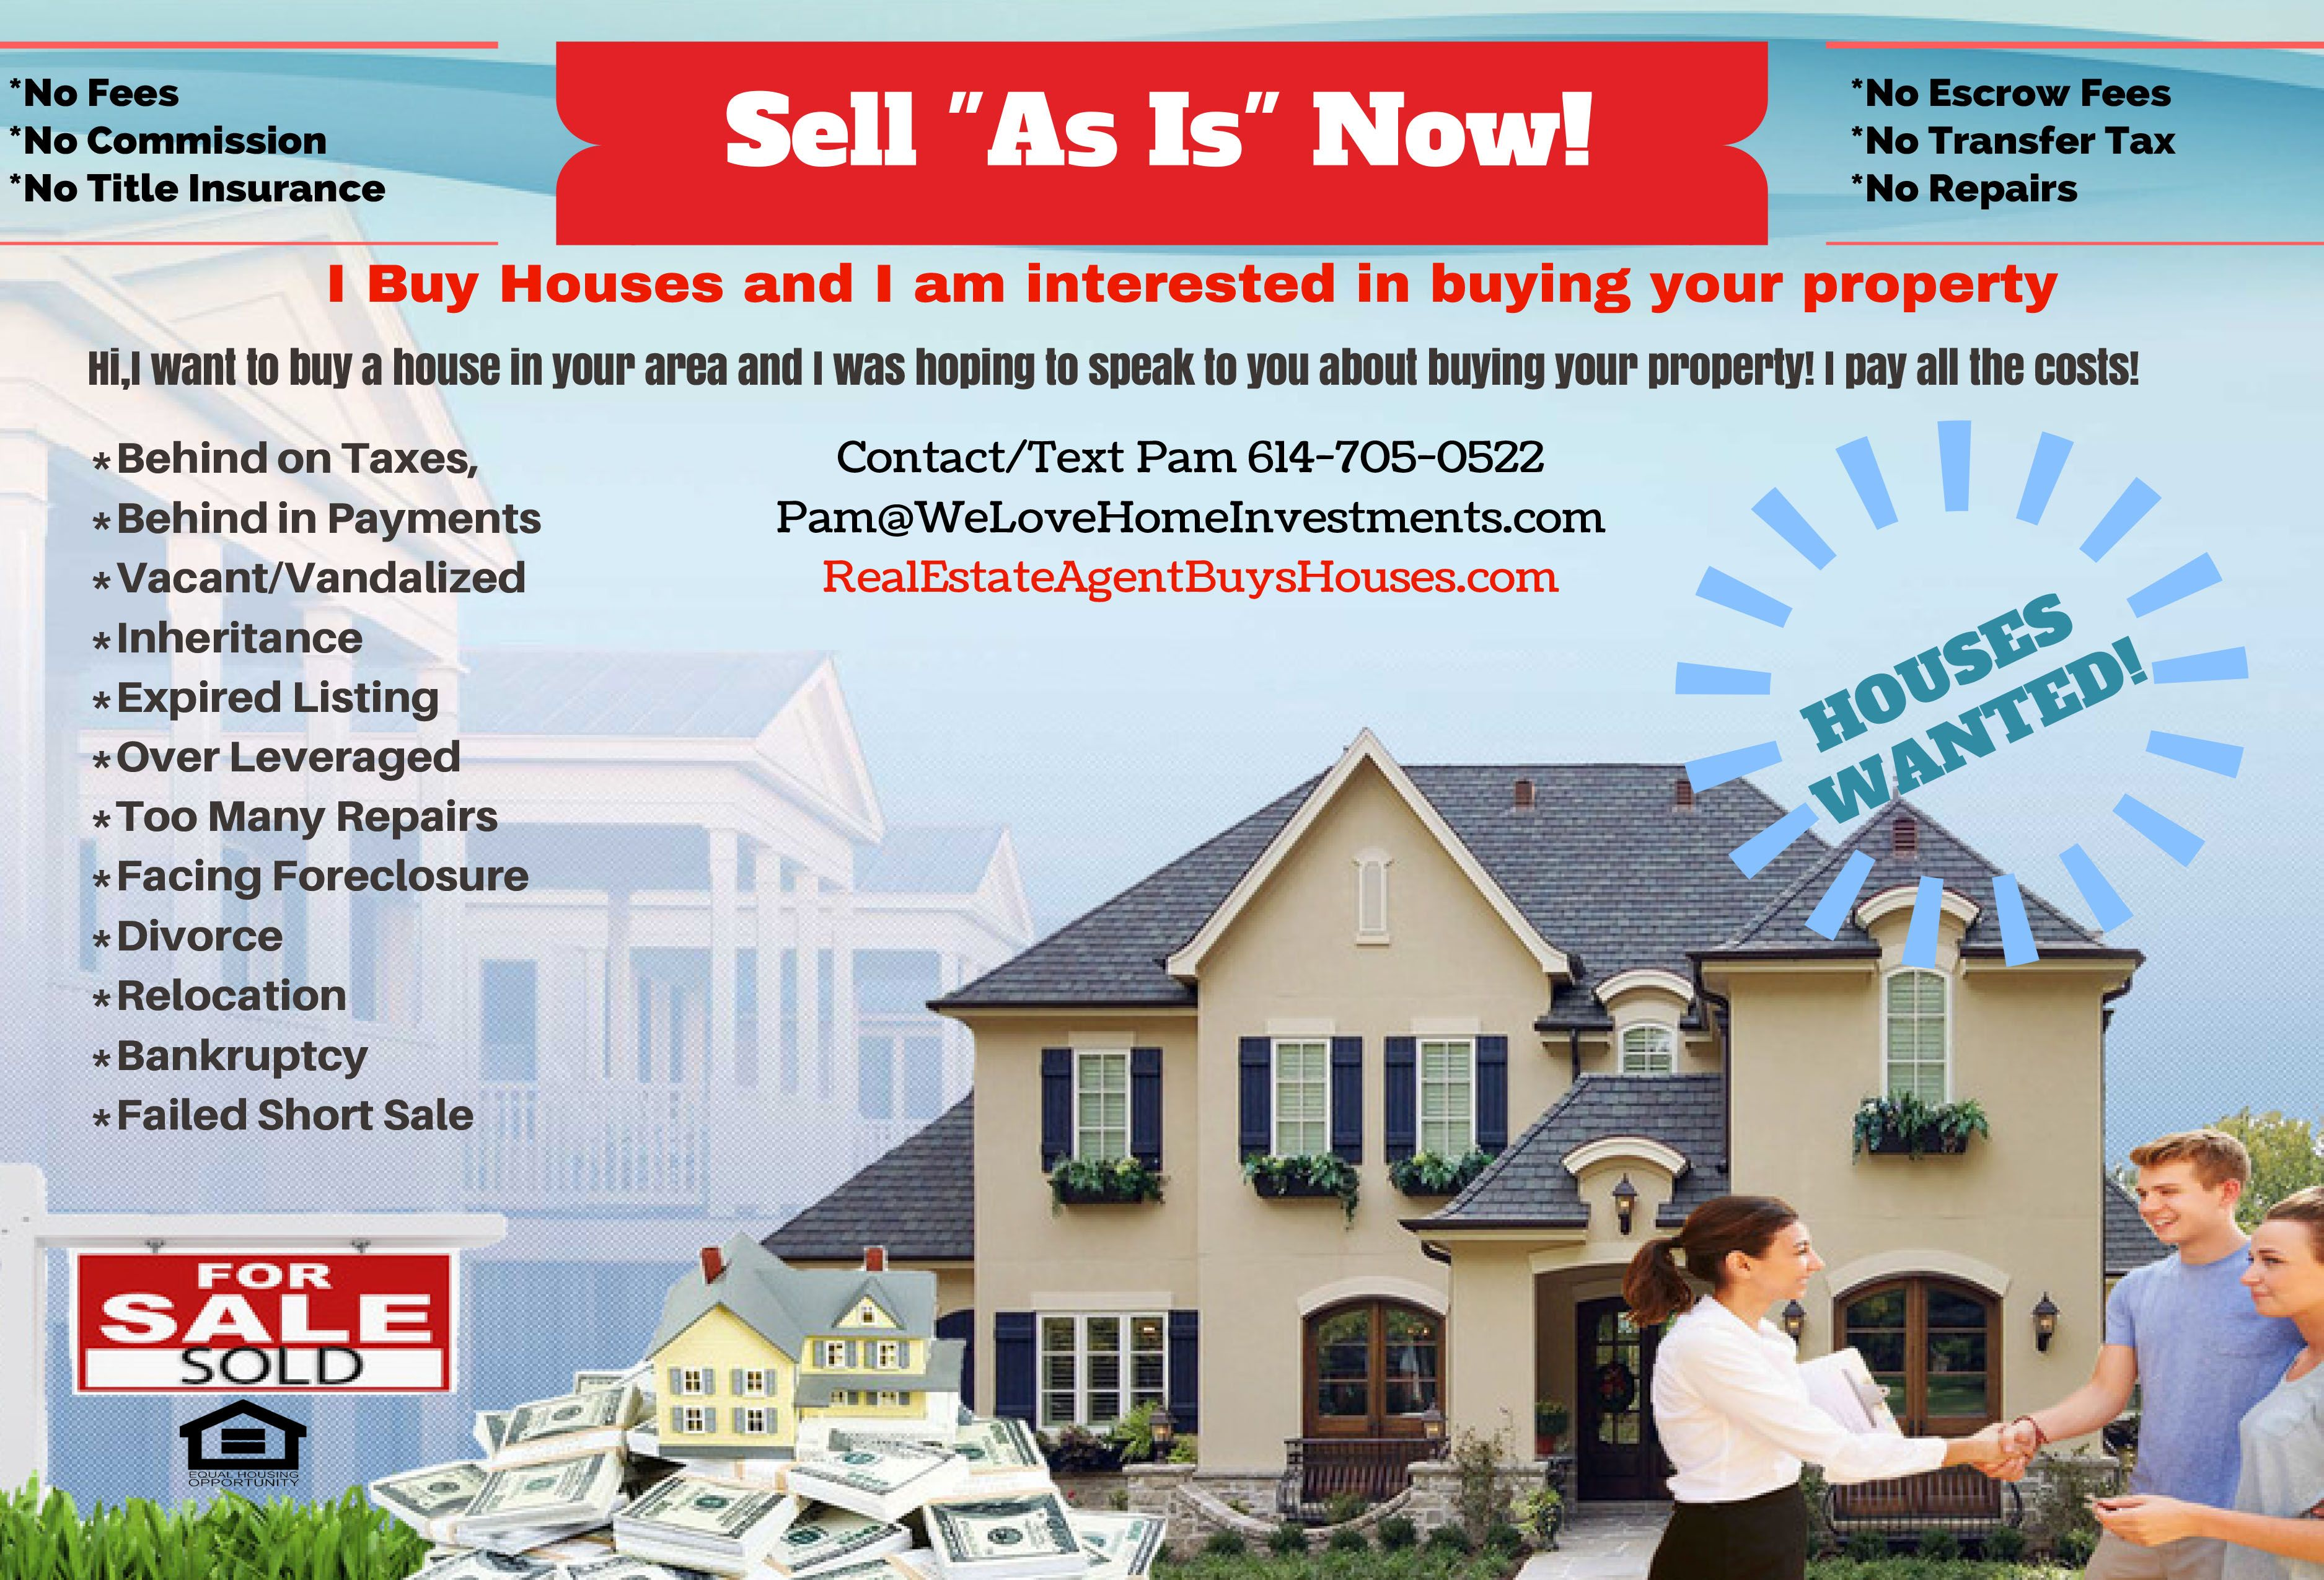 Do you have a problem property sell it to us as is